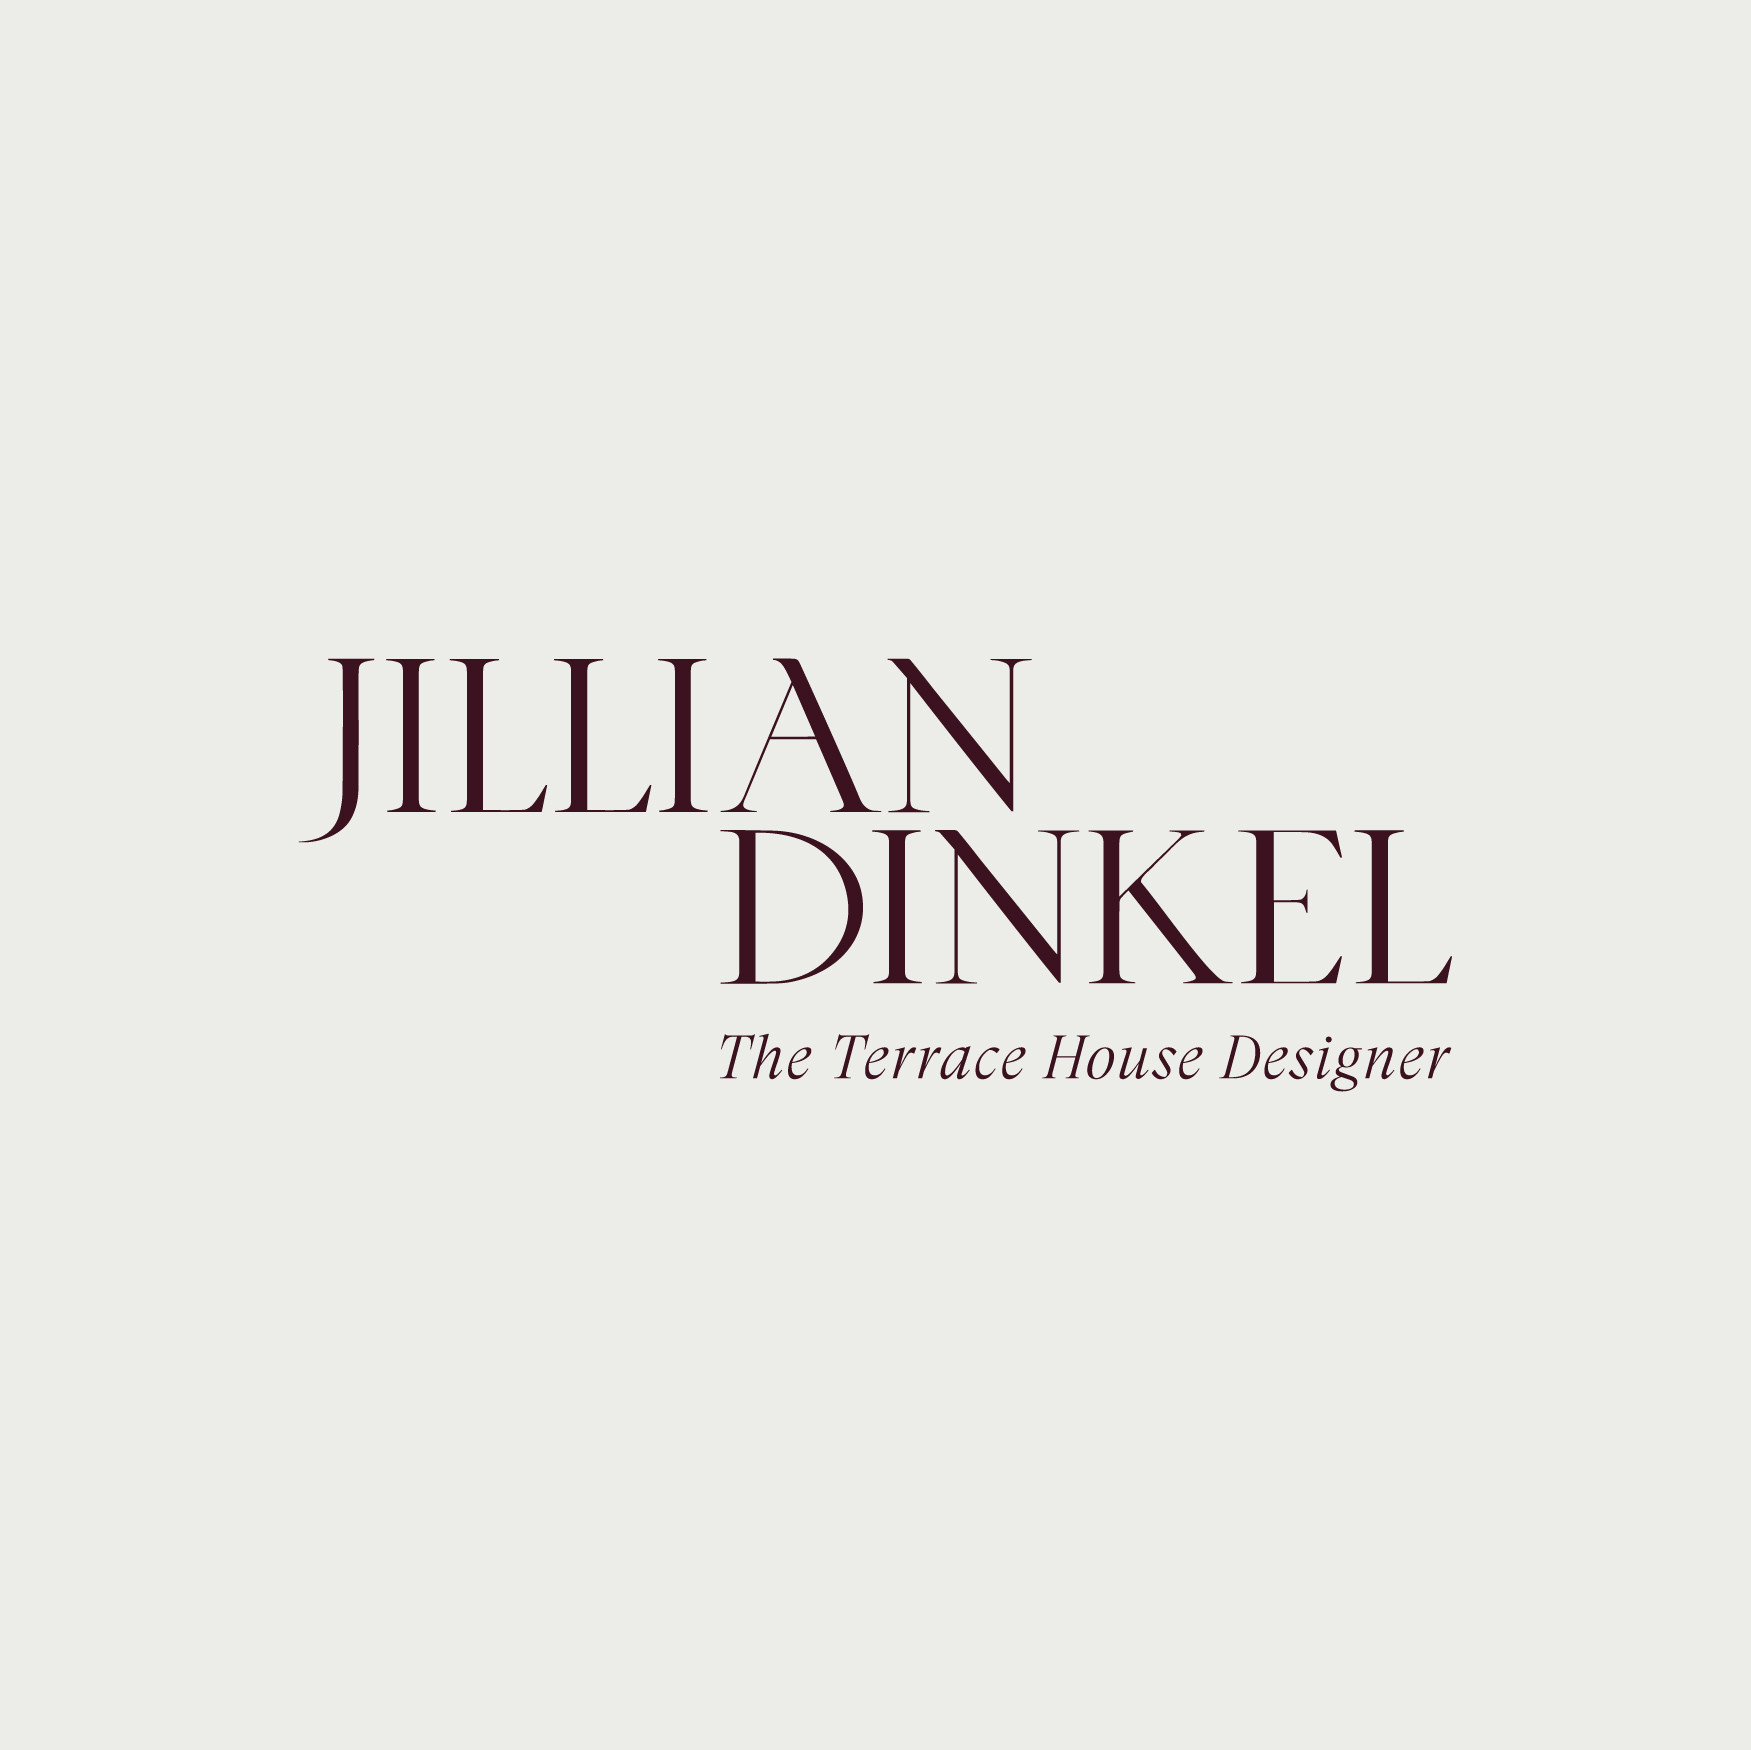 200521_Jillian-Dinkel_Social-Media-Tiles